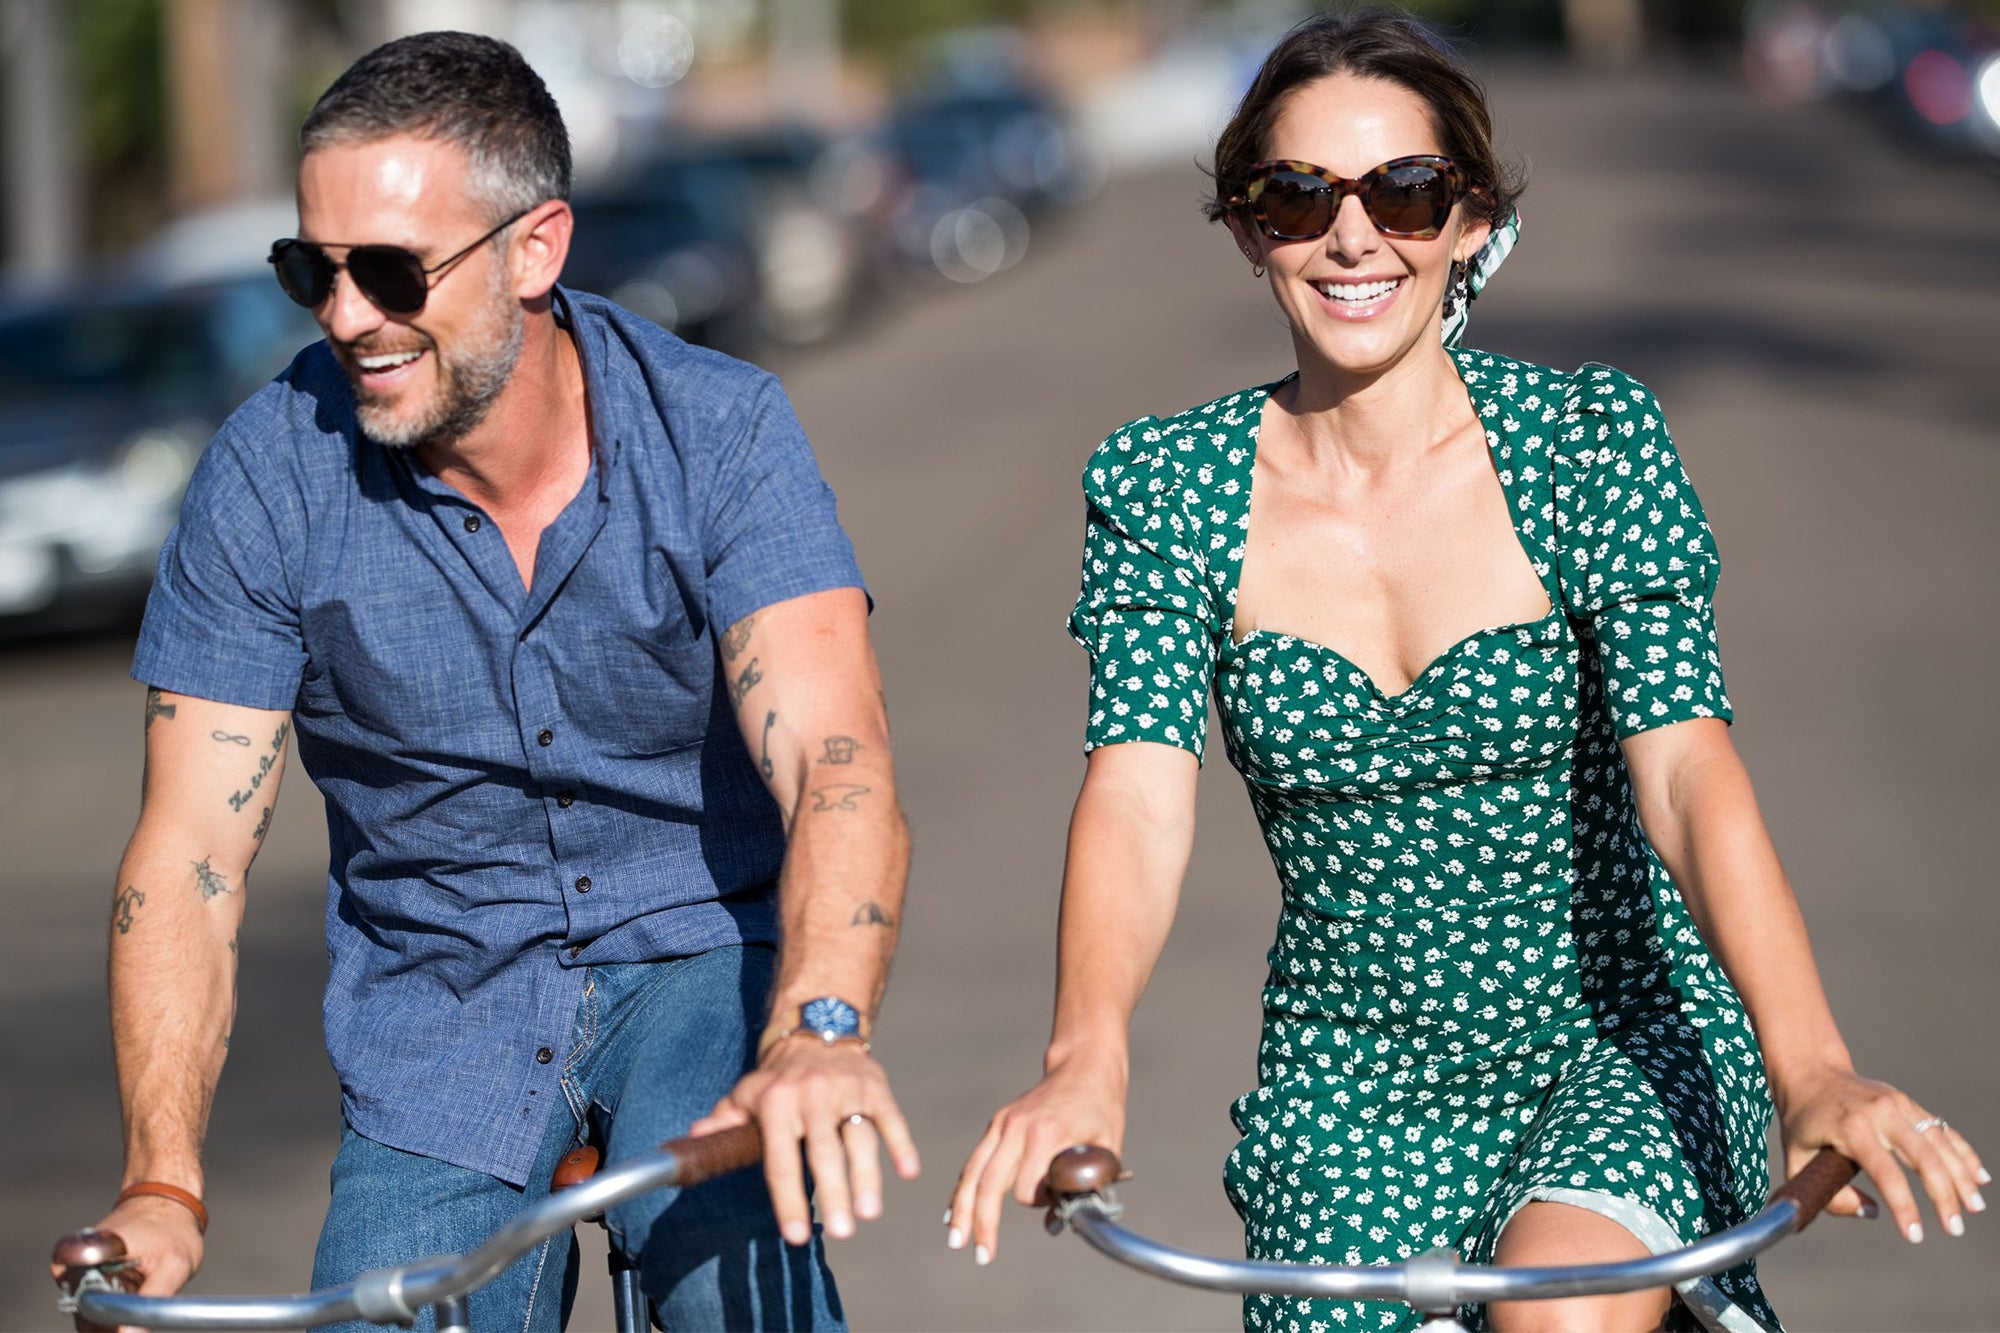 Man and woman in sunglasses riding bikes